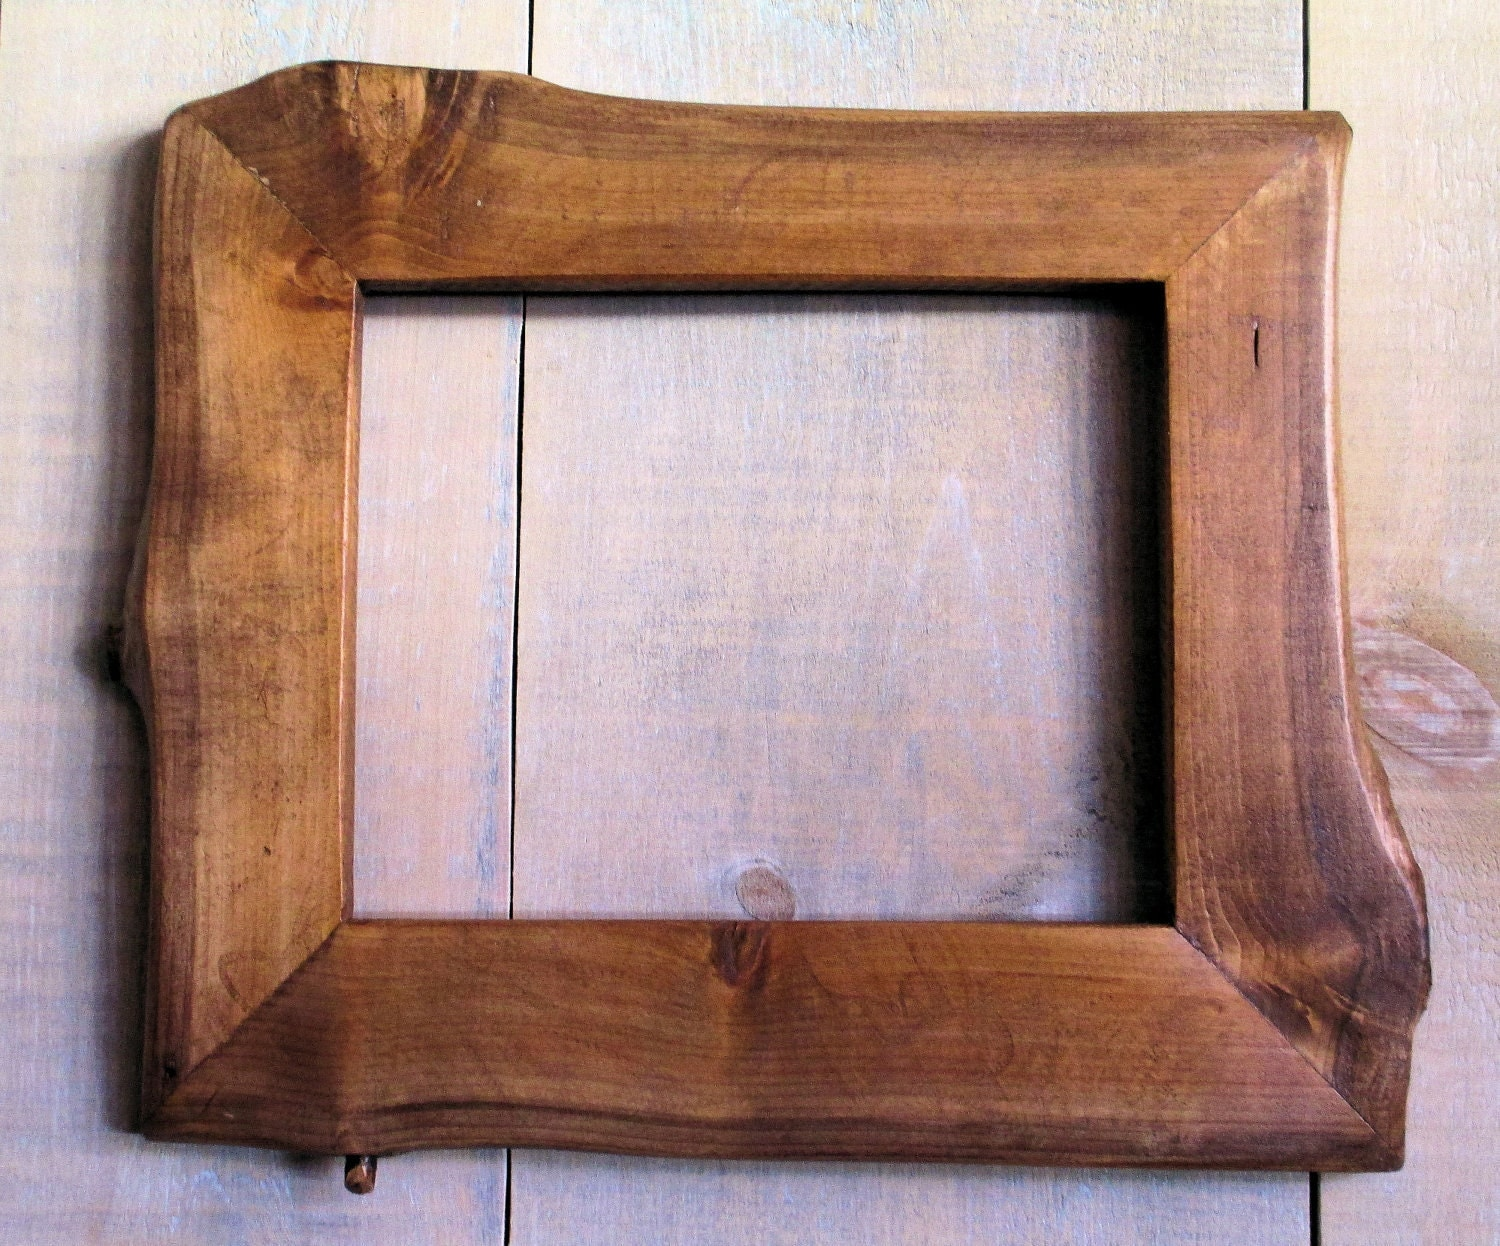 Wooden Frame Glasses Nz : Handmade Rustic Wood Frame 7 1/2x9 3/4 Golden Oak